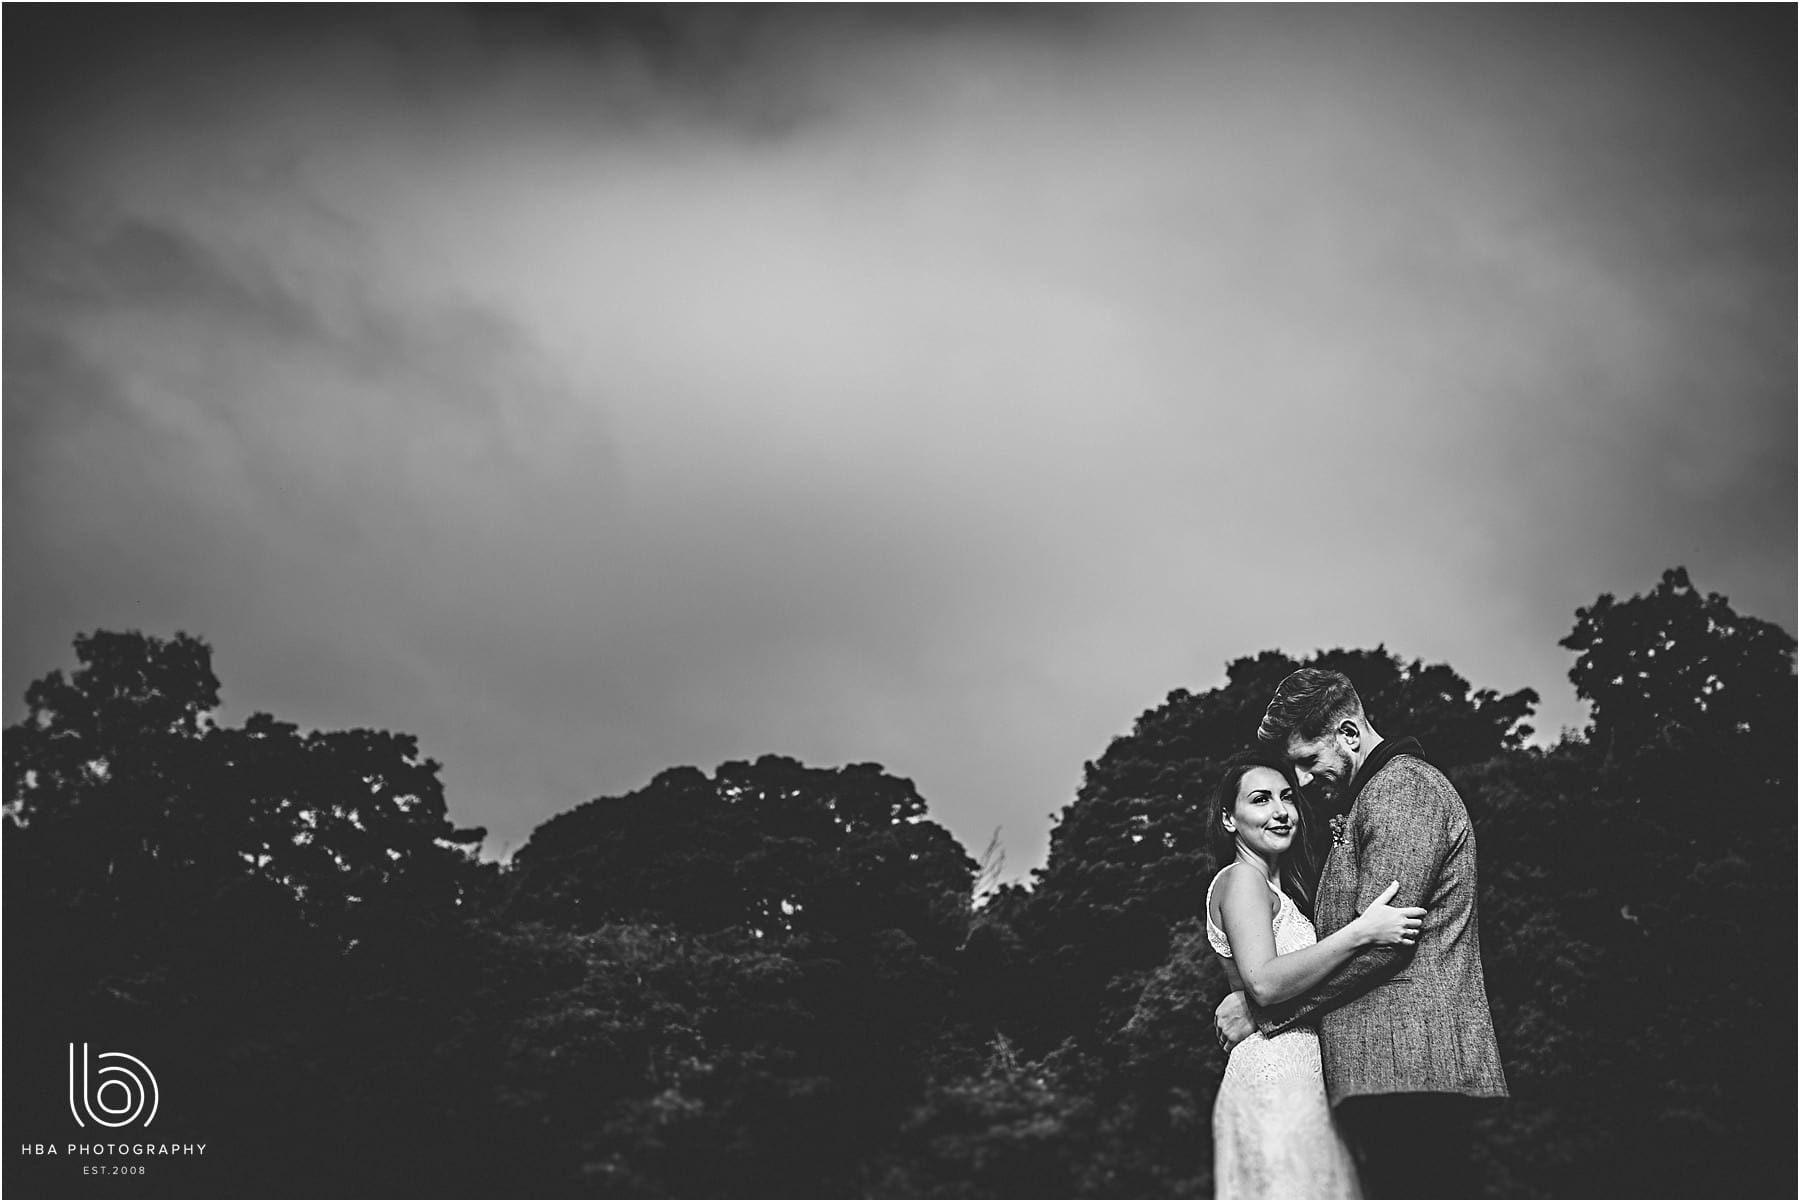 Black-and-white photo of the bride and groom together